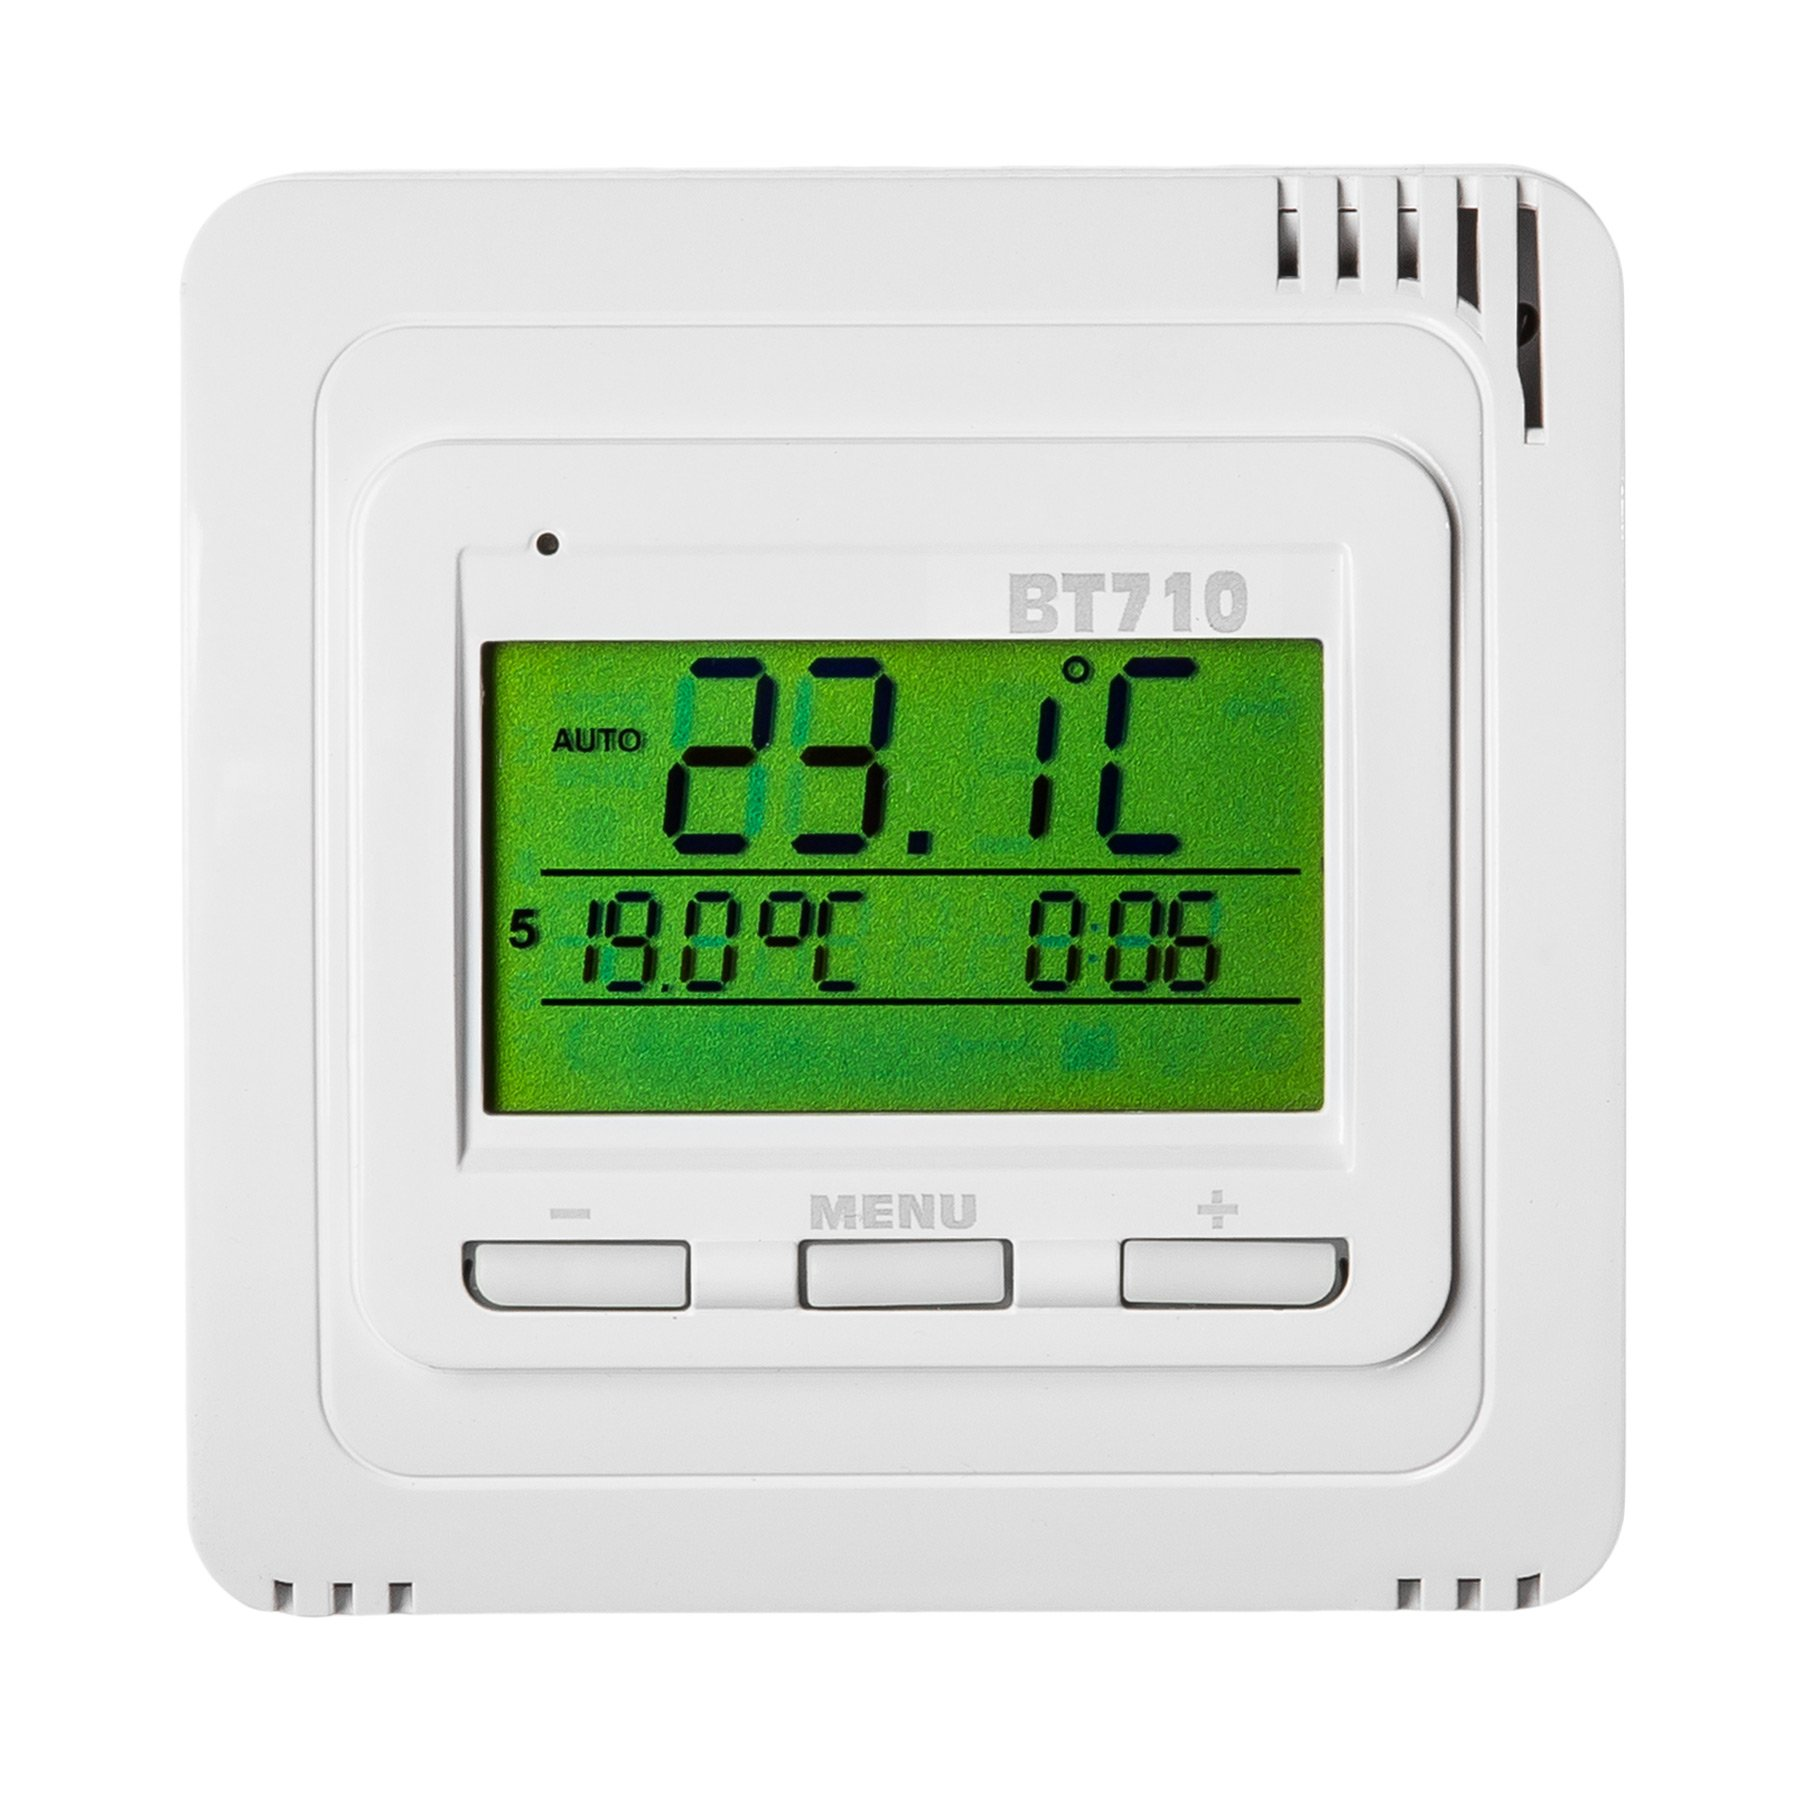 Thermostat programmable d'ambiance digital chauffage climatisation electronique (Type 3   No. 401343) product image